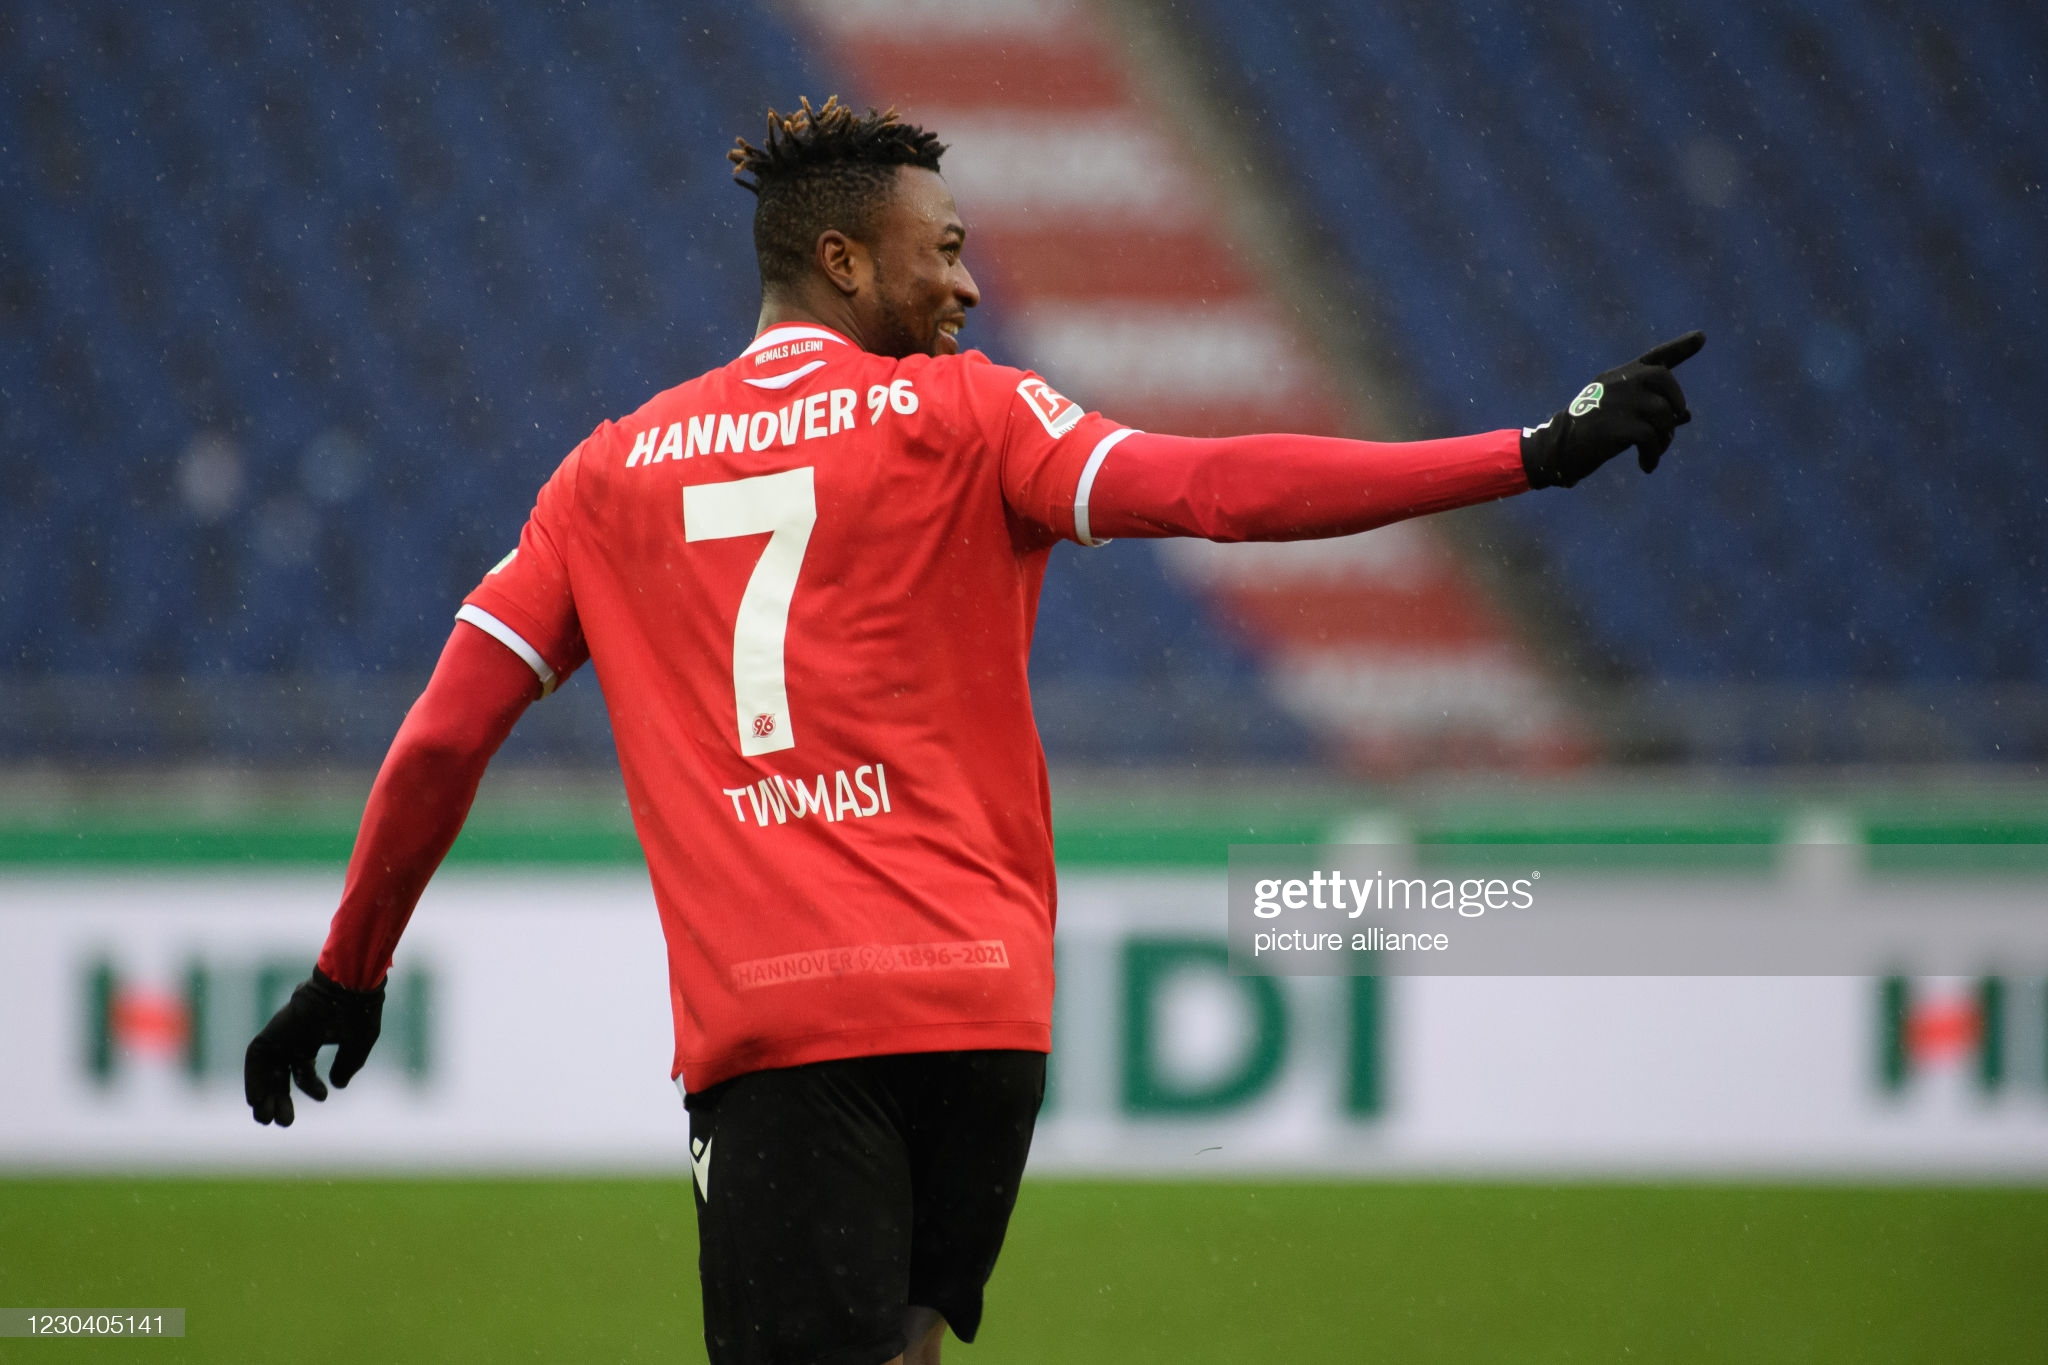 Ghana attacker Patrick Twumasi scores to seal big win for Hannover 96 against Nurnberg